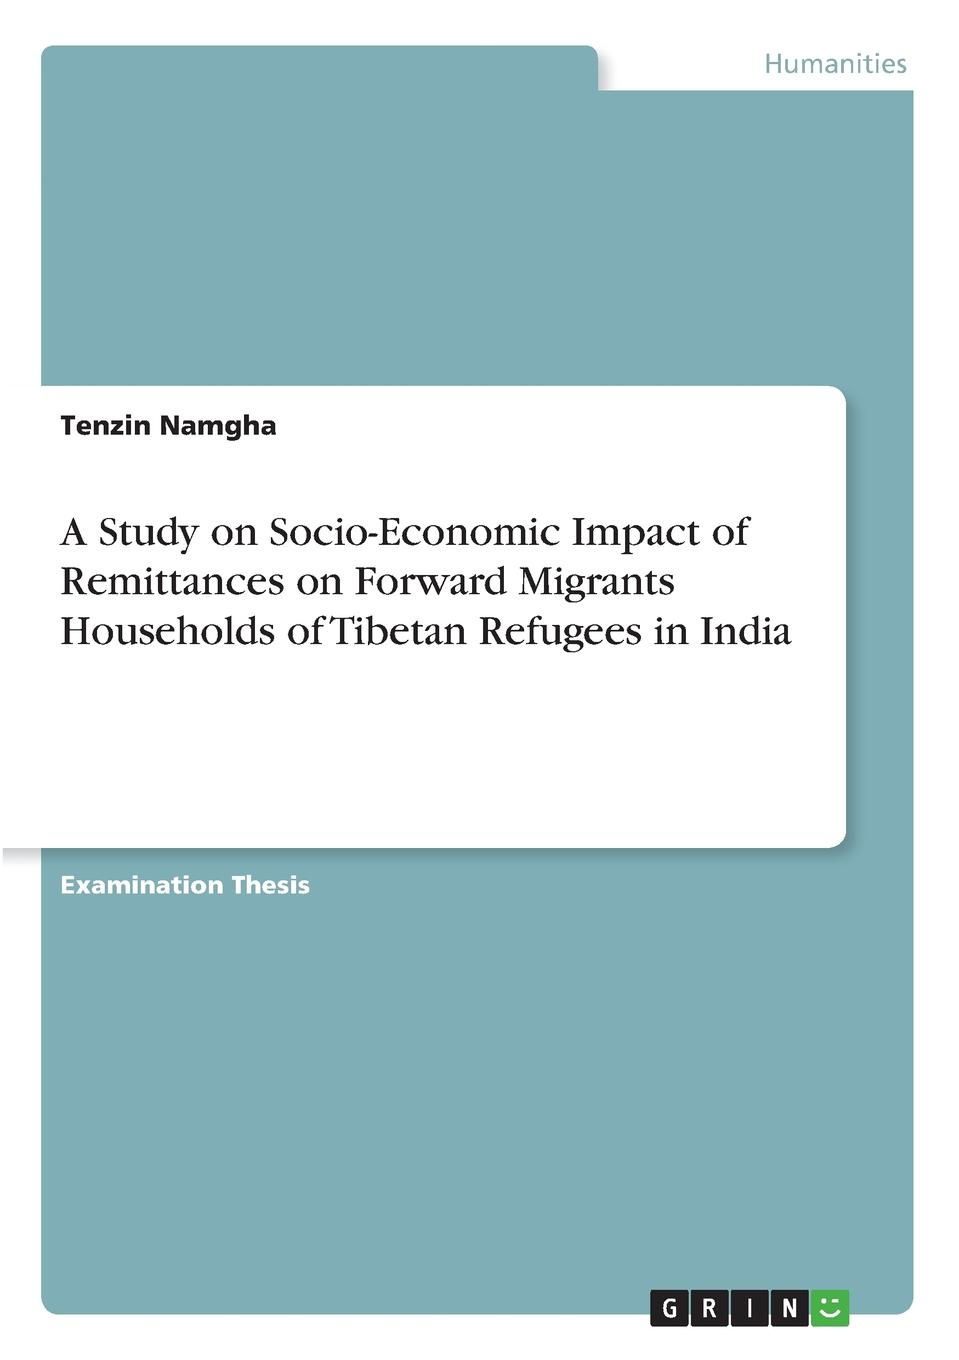 Tenzin Namgha A Study on Socio-Economic Impact of Remittances on Forward Migrants Households of Tibetan Refugees in India